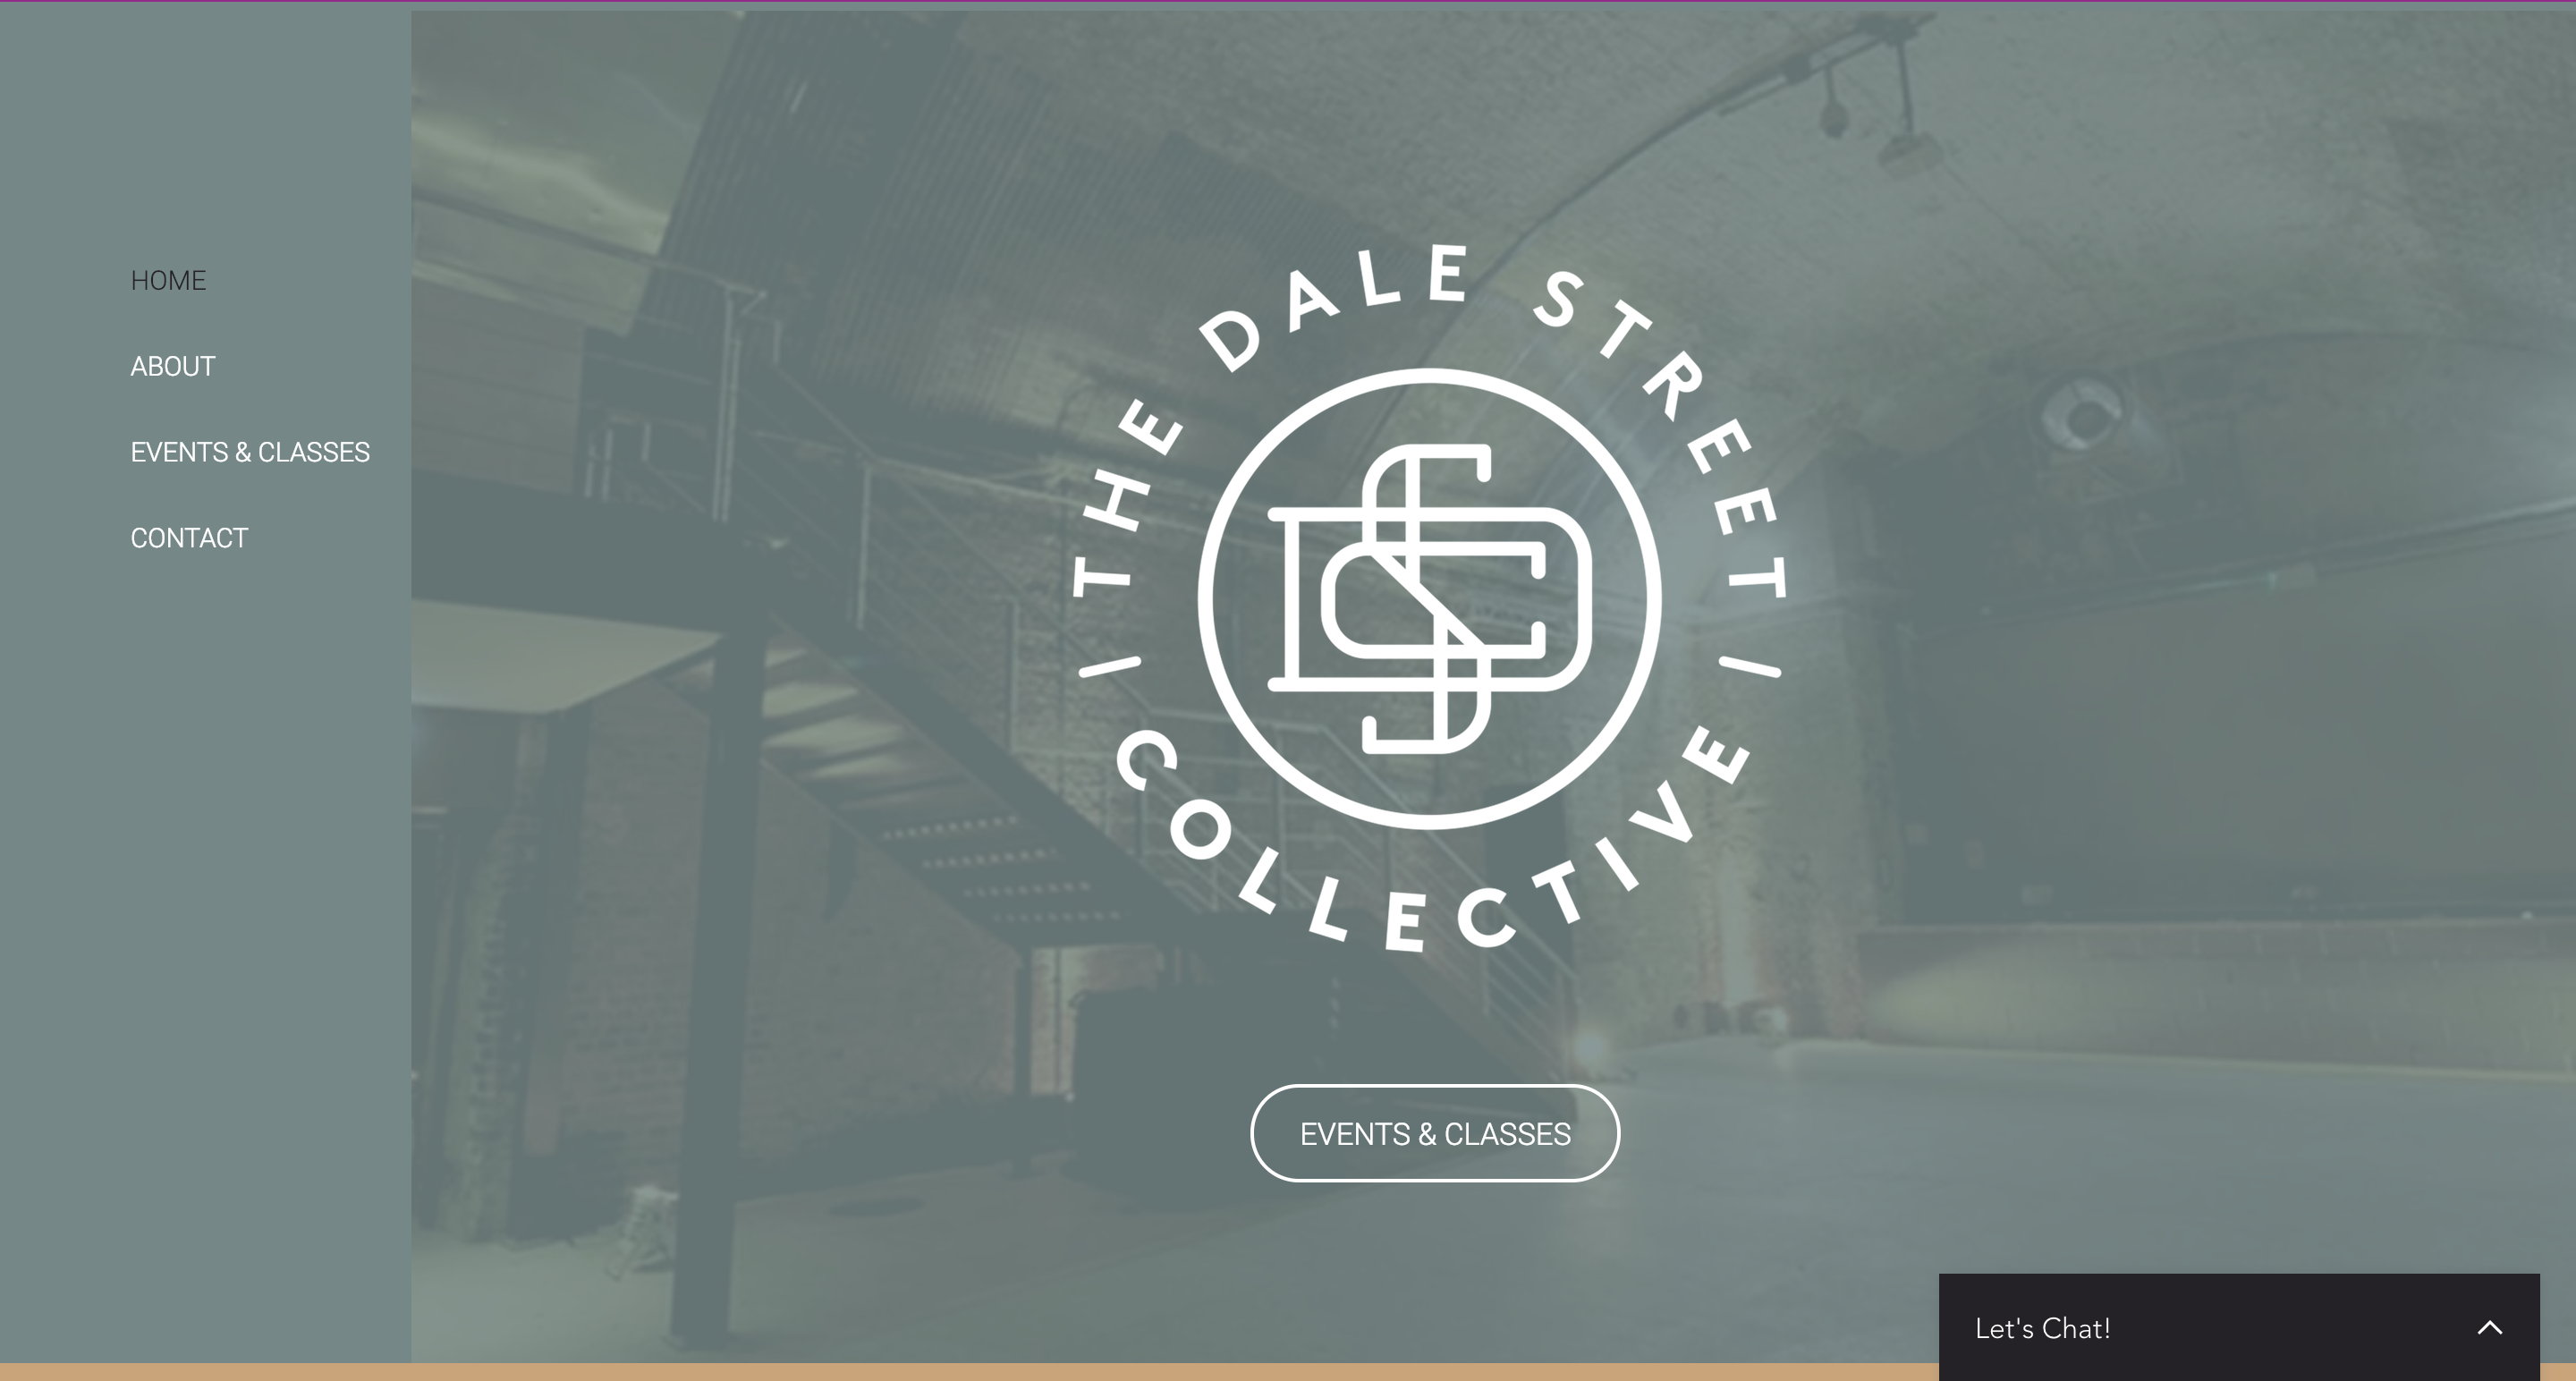 Dale Street Collective